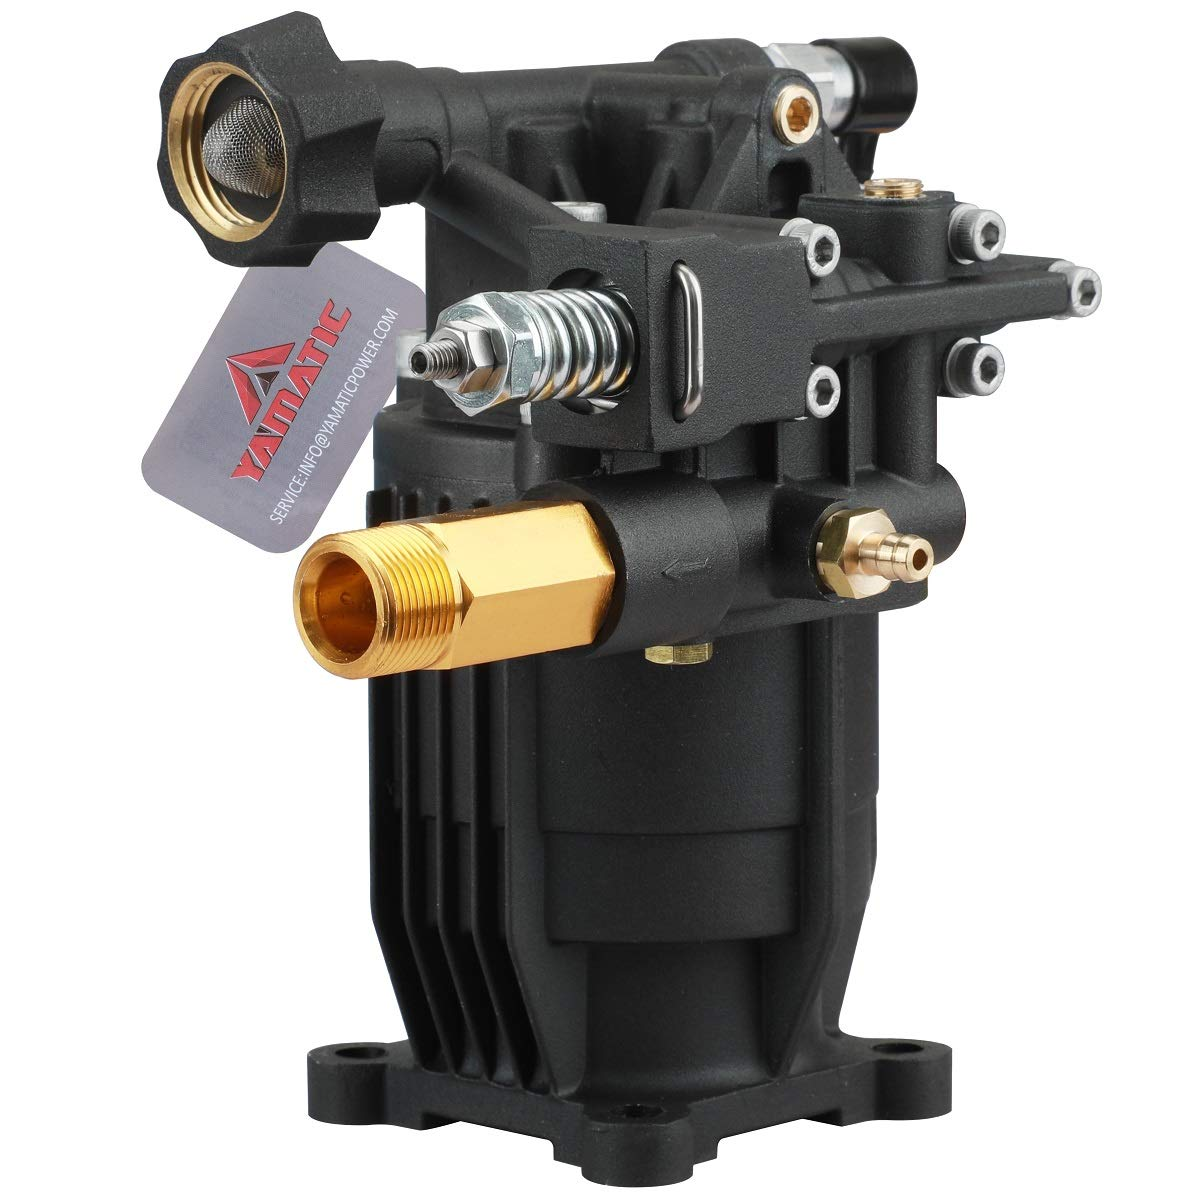 """YAMATIC Horizontal Pump 3/4"""" Shaft 3100 PSI 2.5 GPM - Upgrade- Cold Water Power Pressure Washer Pump Replacement for 308418007 Generac 308418007 Simpson MSH3125 and Many Models"""